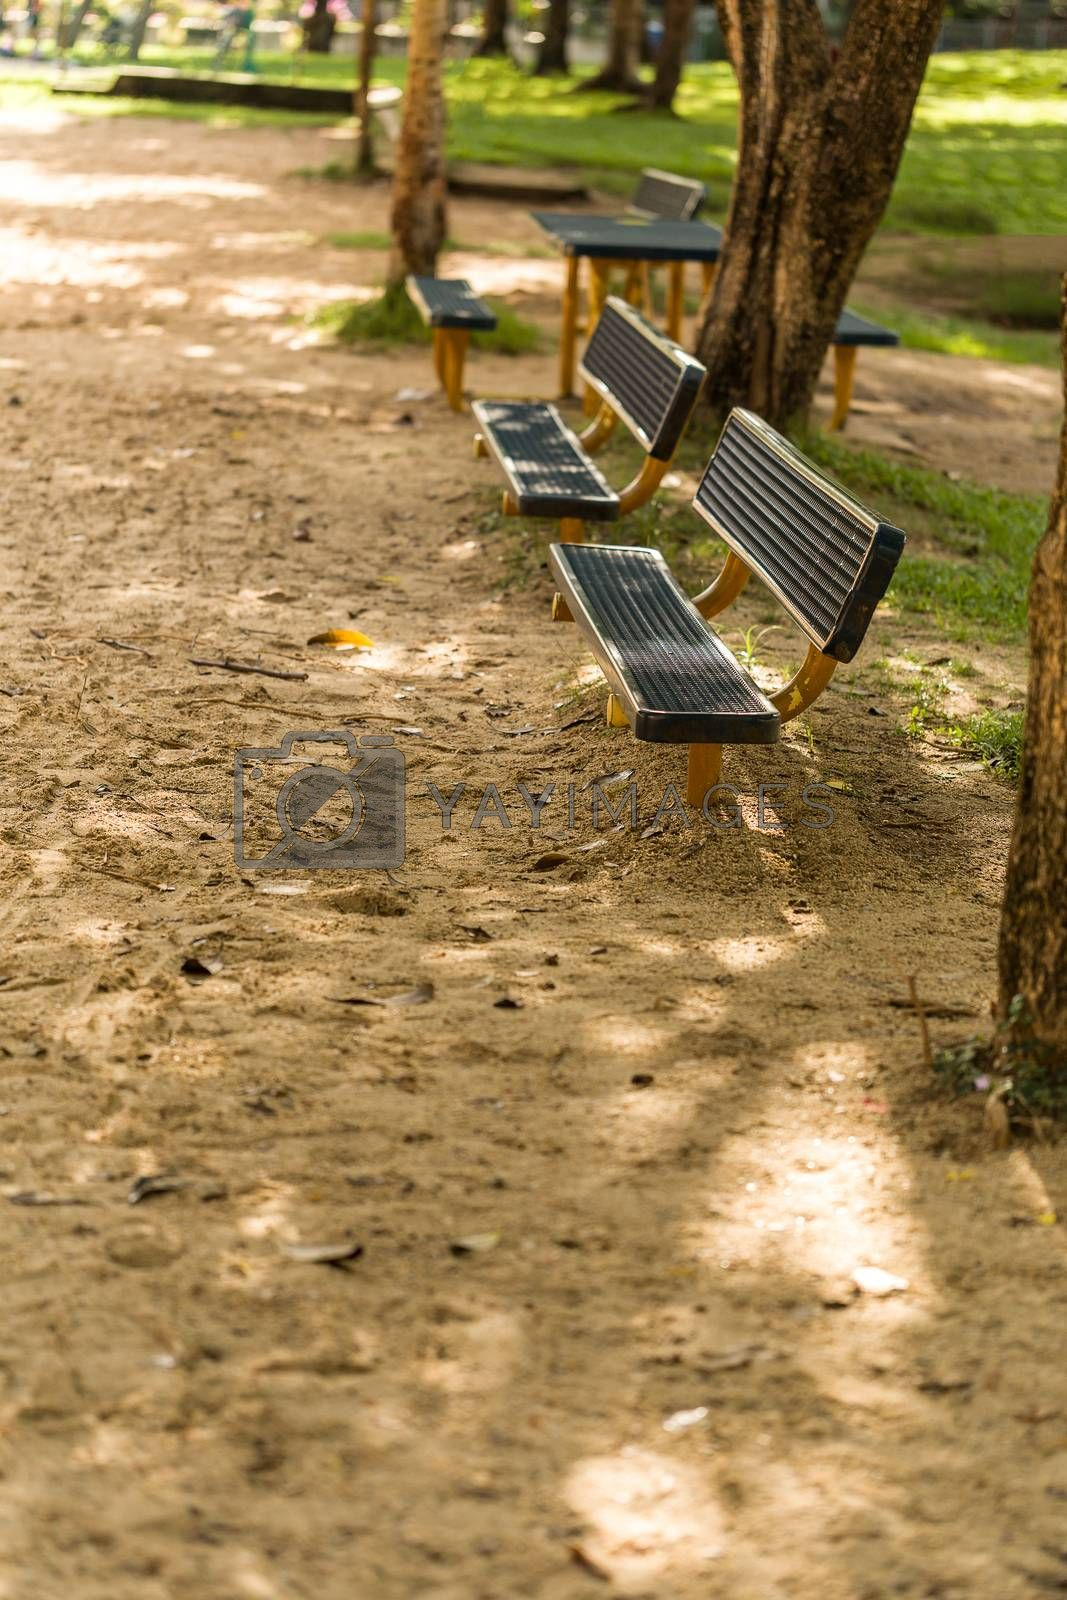 Bench with nobody in park illustrating empty concept.